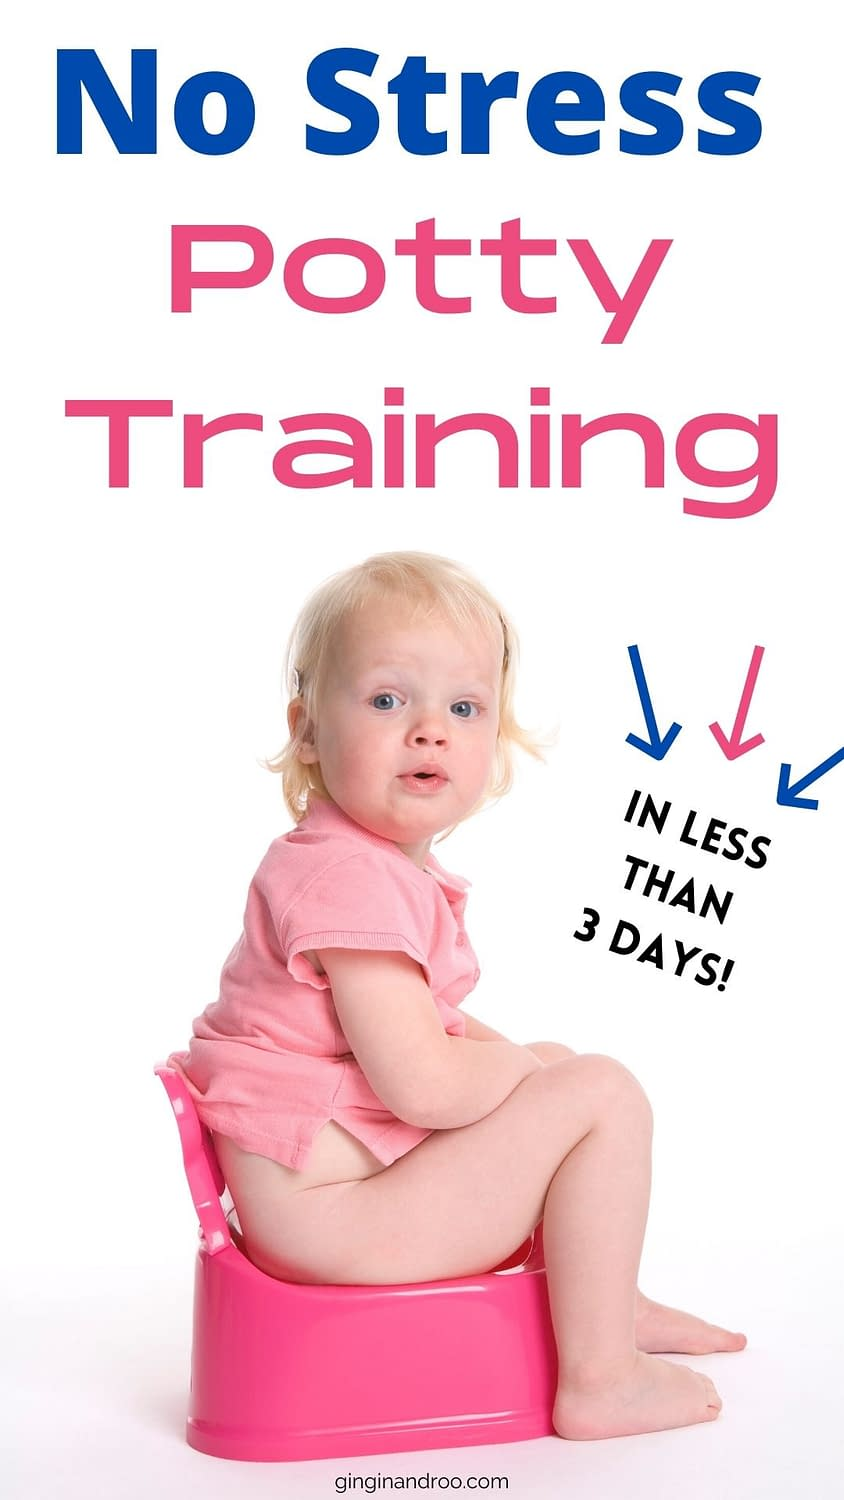 Want to potty train your toddler quickly? Avoid making common potty training mistakes and find out how to successfully potty train your toddler in less than 3 days!